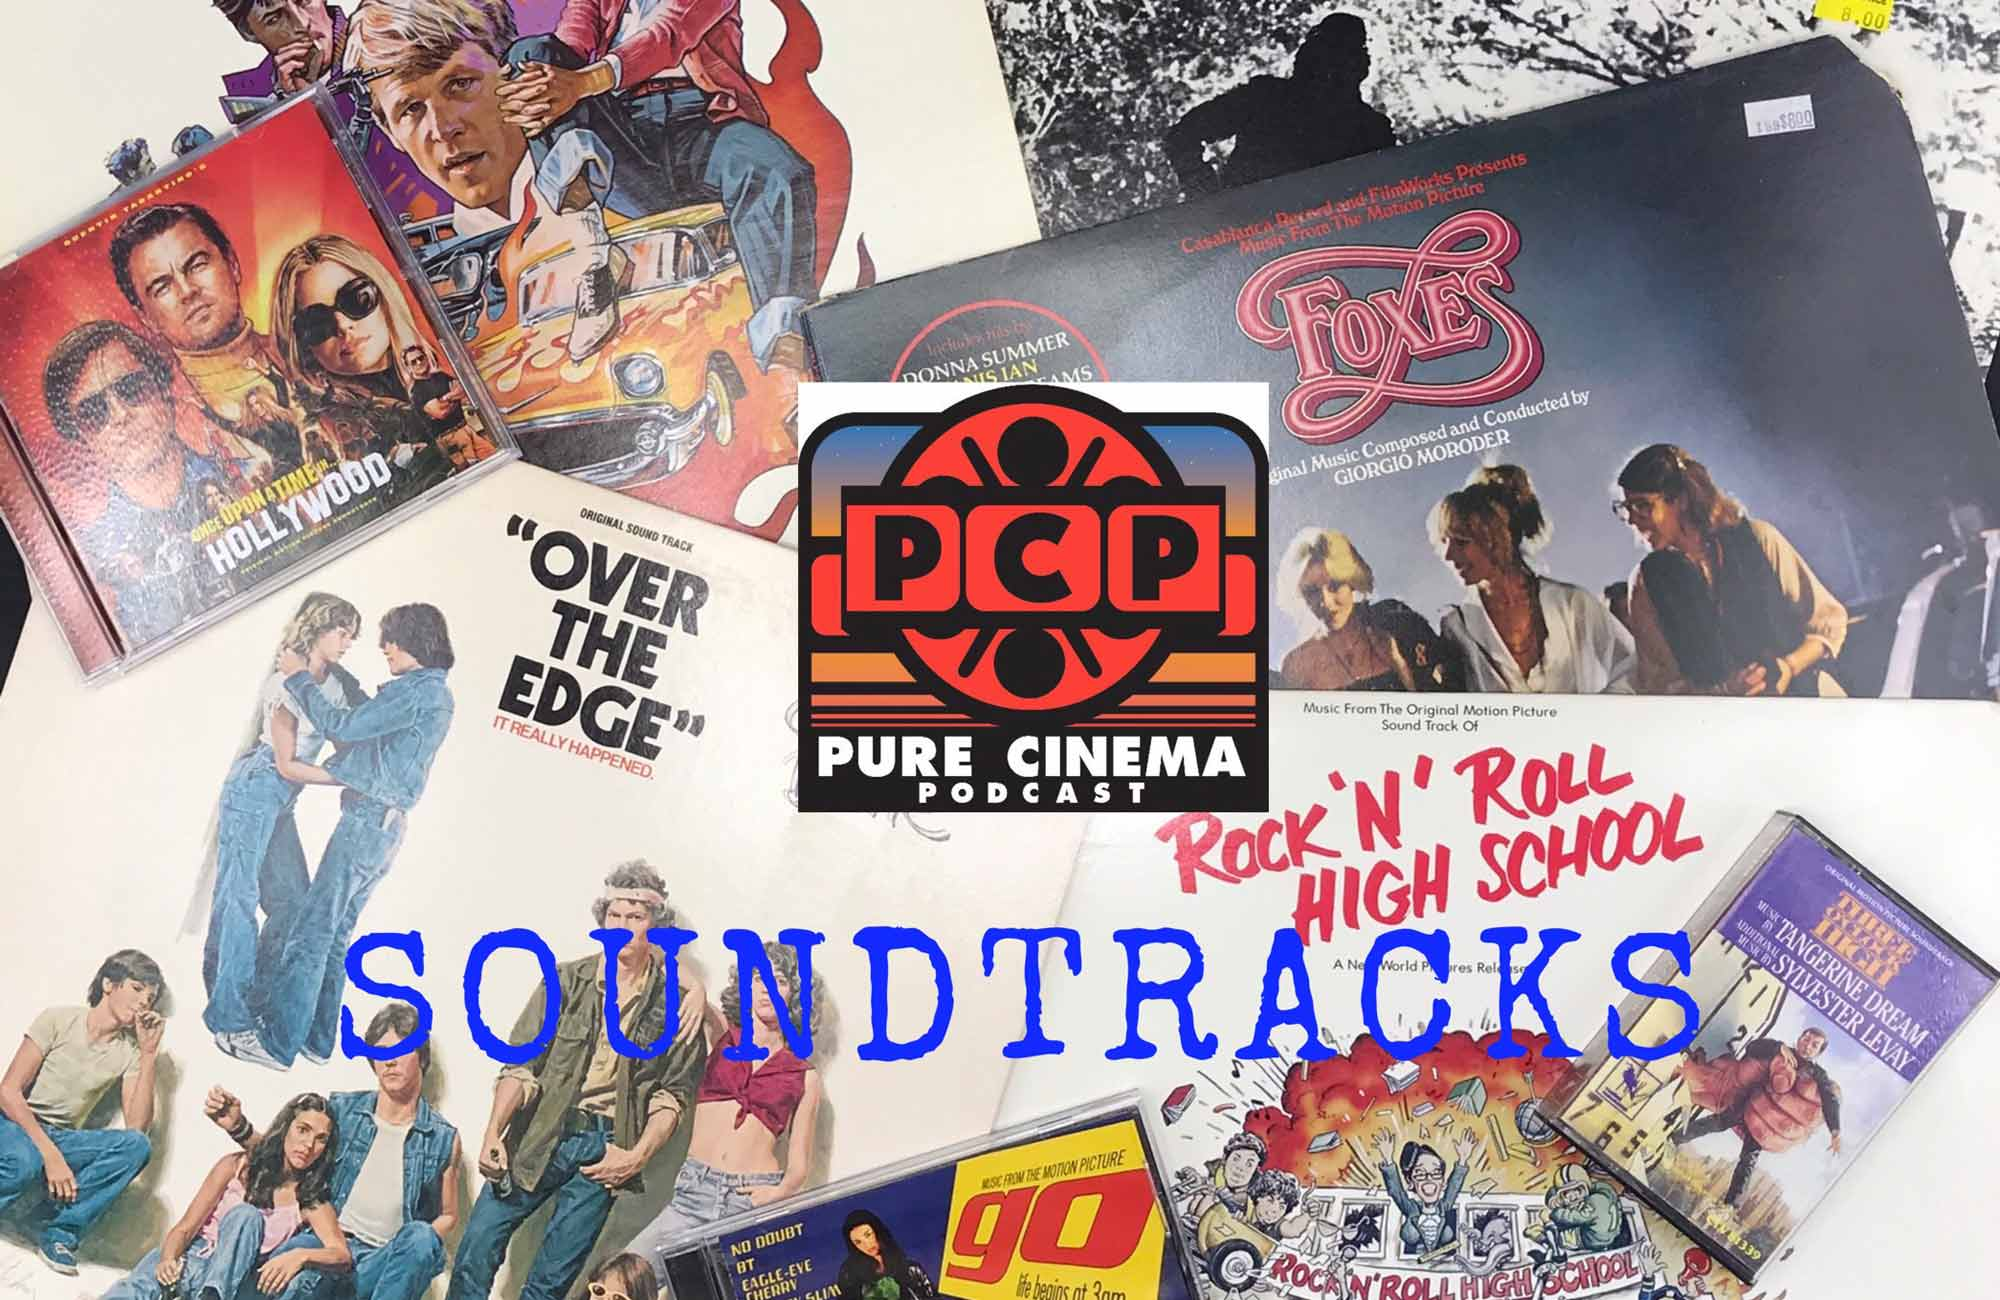 Pure Cinema Podcast: Soundtracks